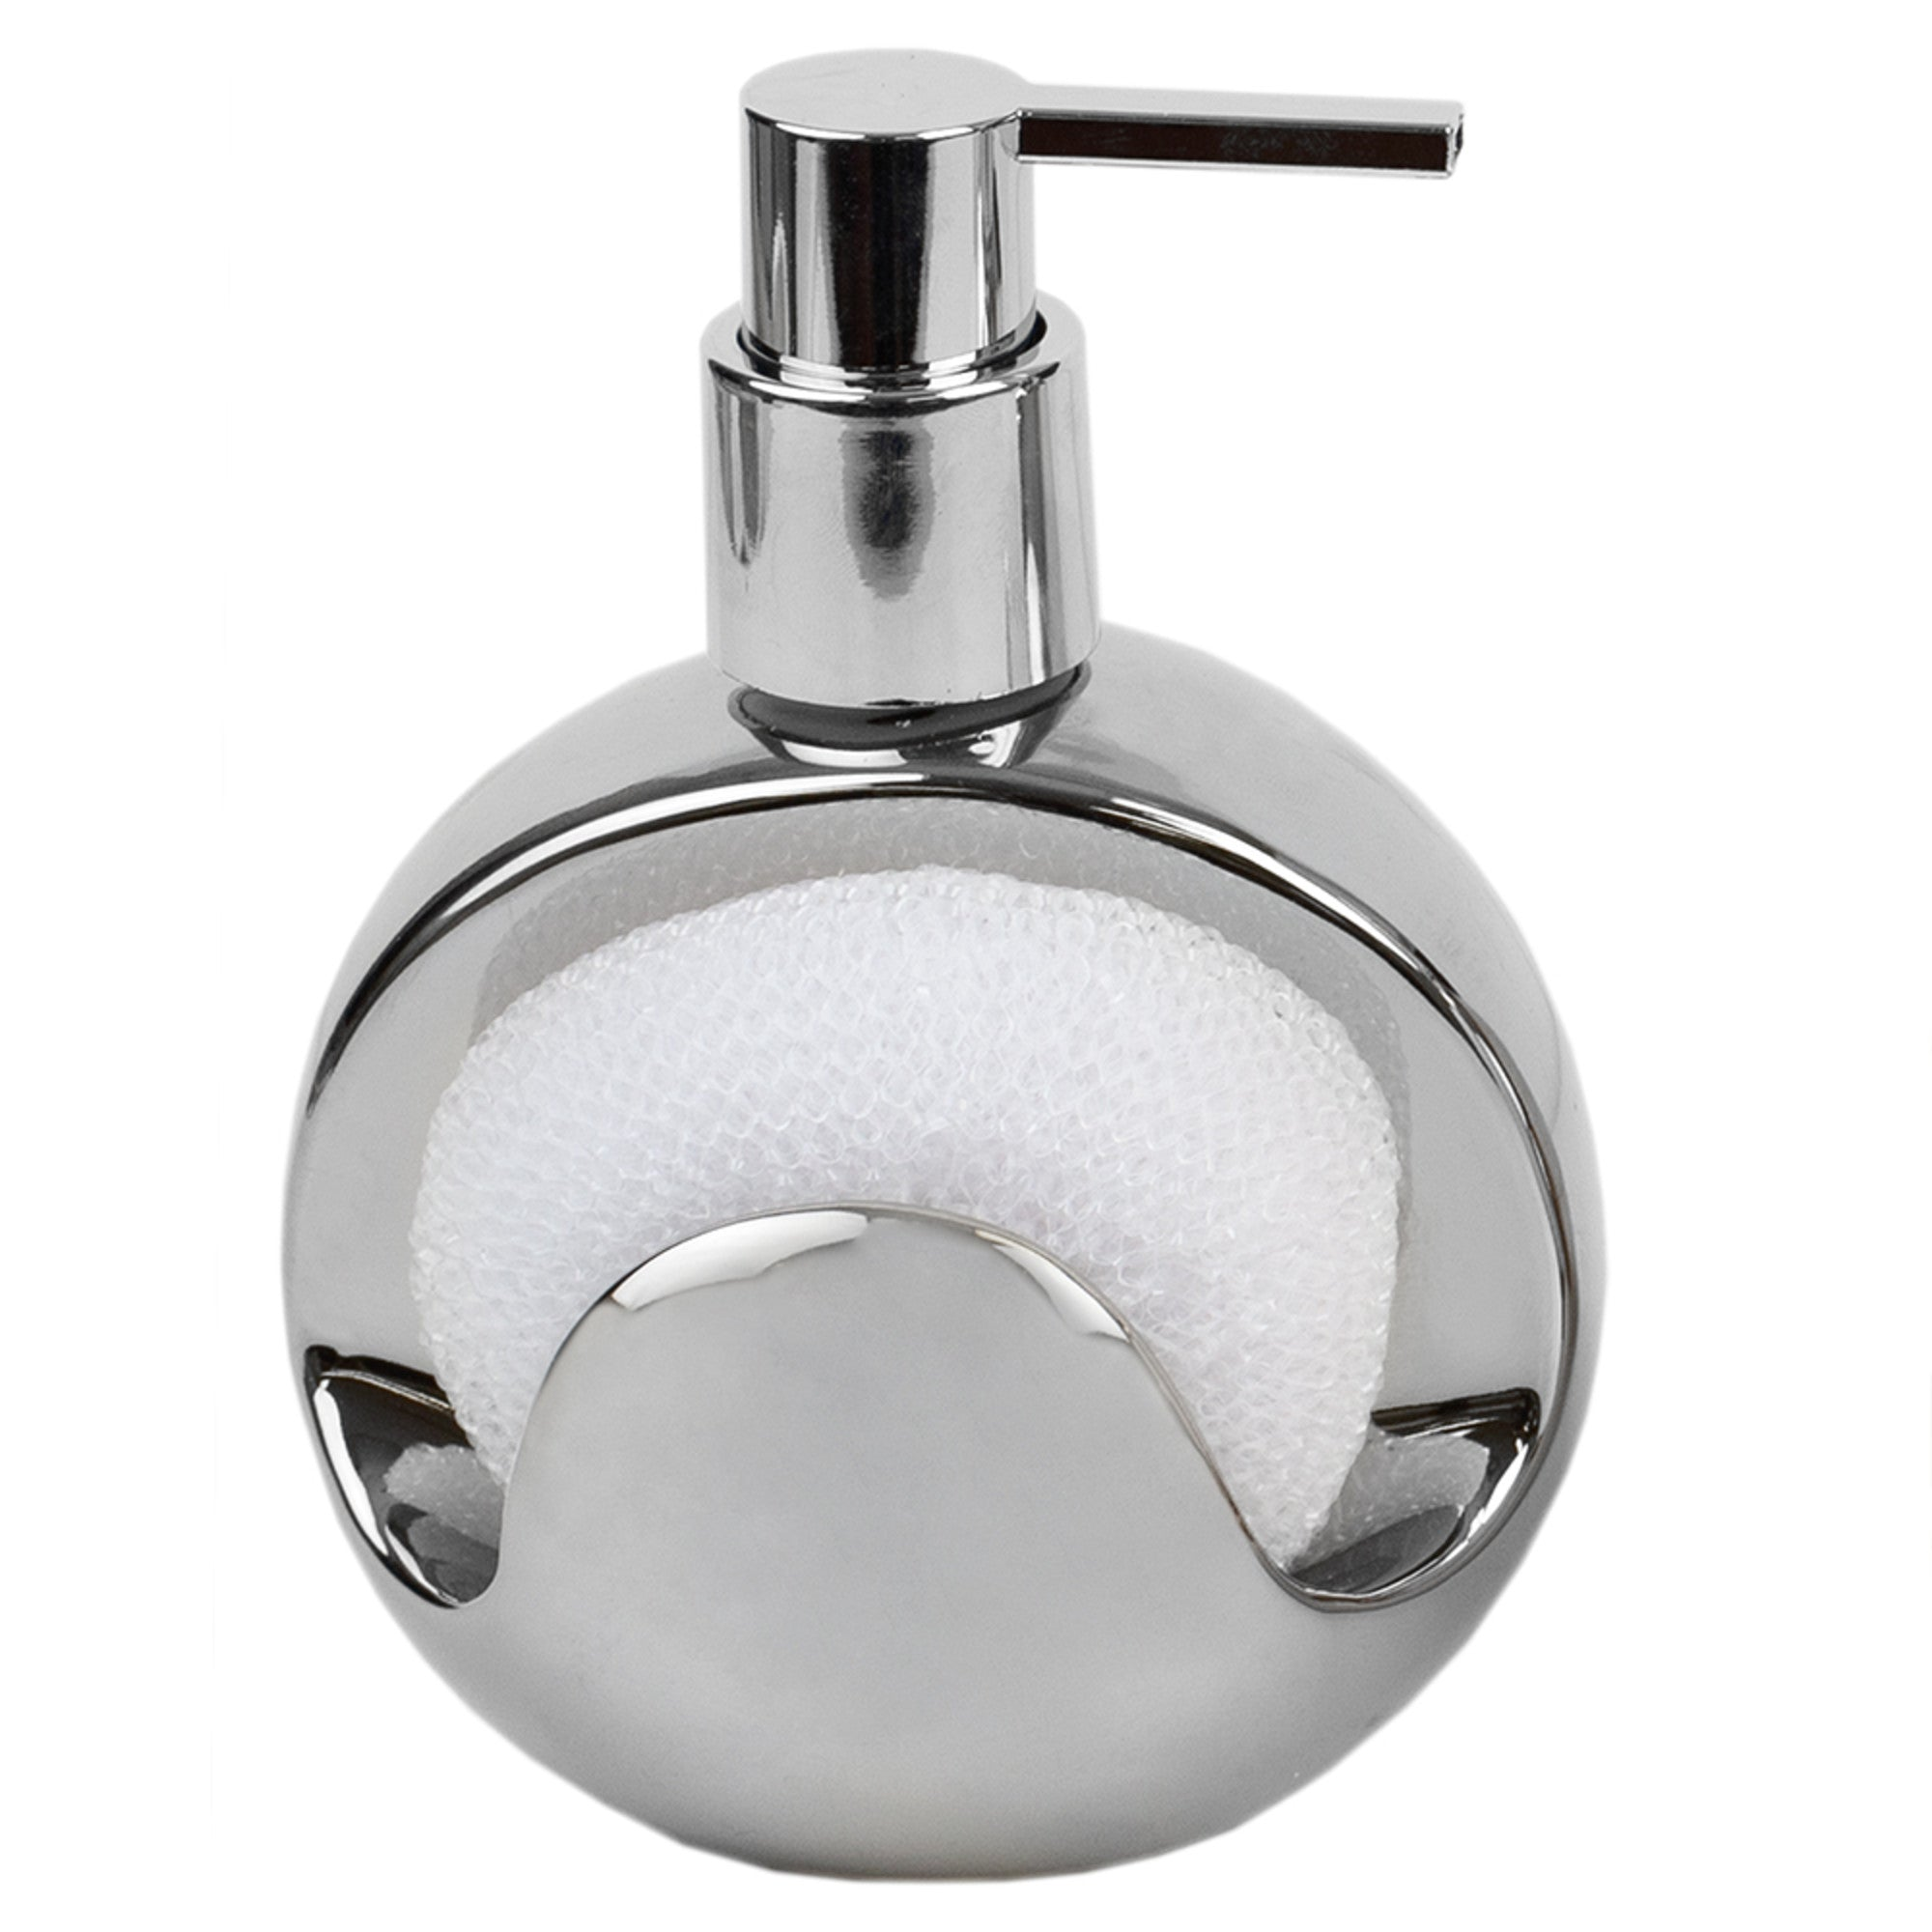 Home Basics Cosmic Ceramic Soap Dispenser with Steel Top and Fixed Sponge Holder, Silver - Silver